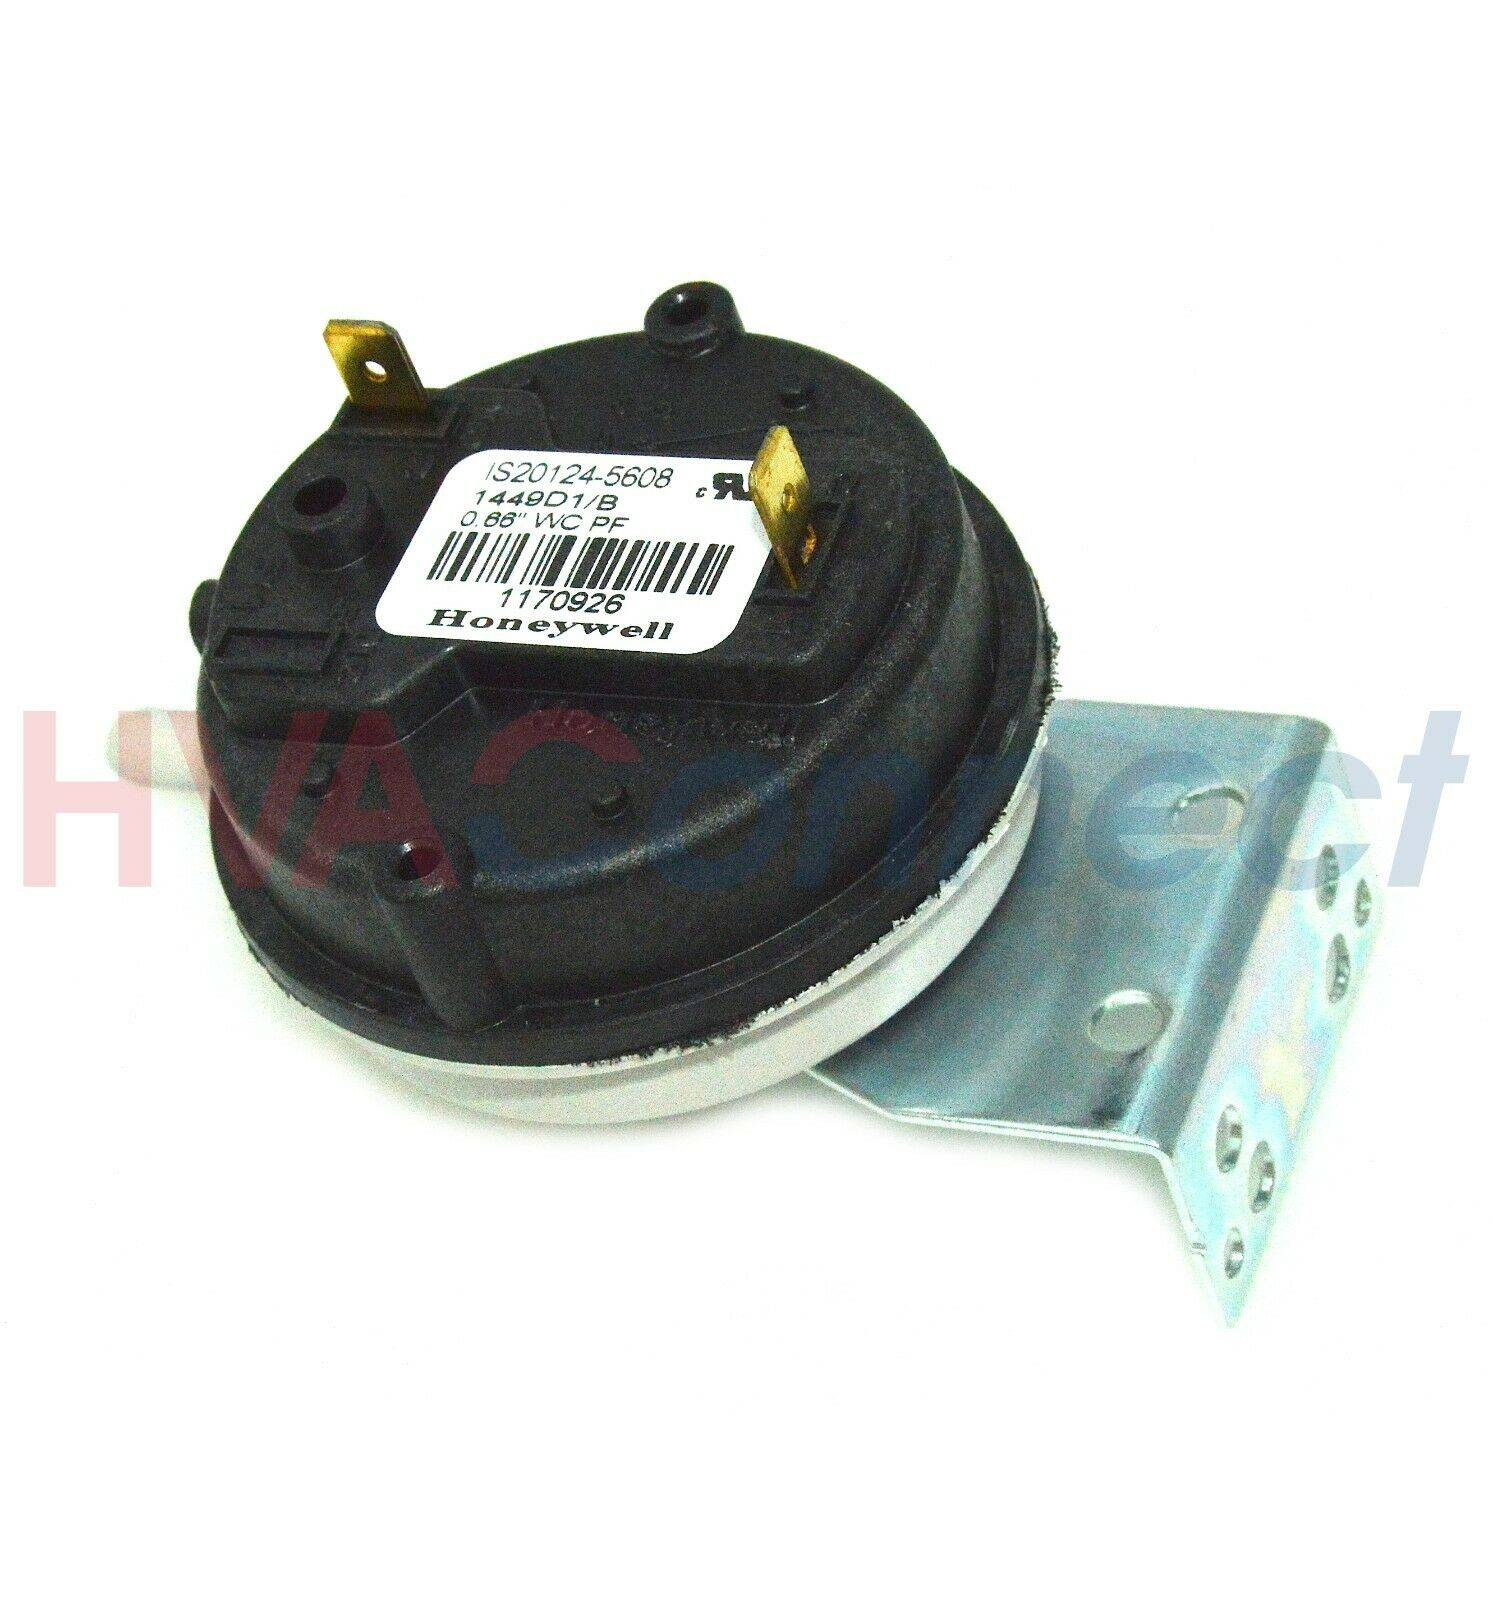 Honeywell Furnace Air Pressure Switch Is20124 5608 066 4767 1013802 Oem Parts Icp Heil 1 Of 1only 5 Available